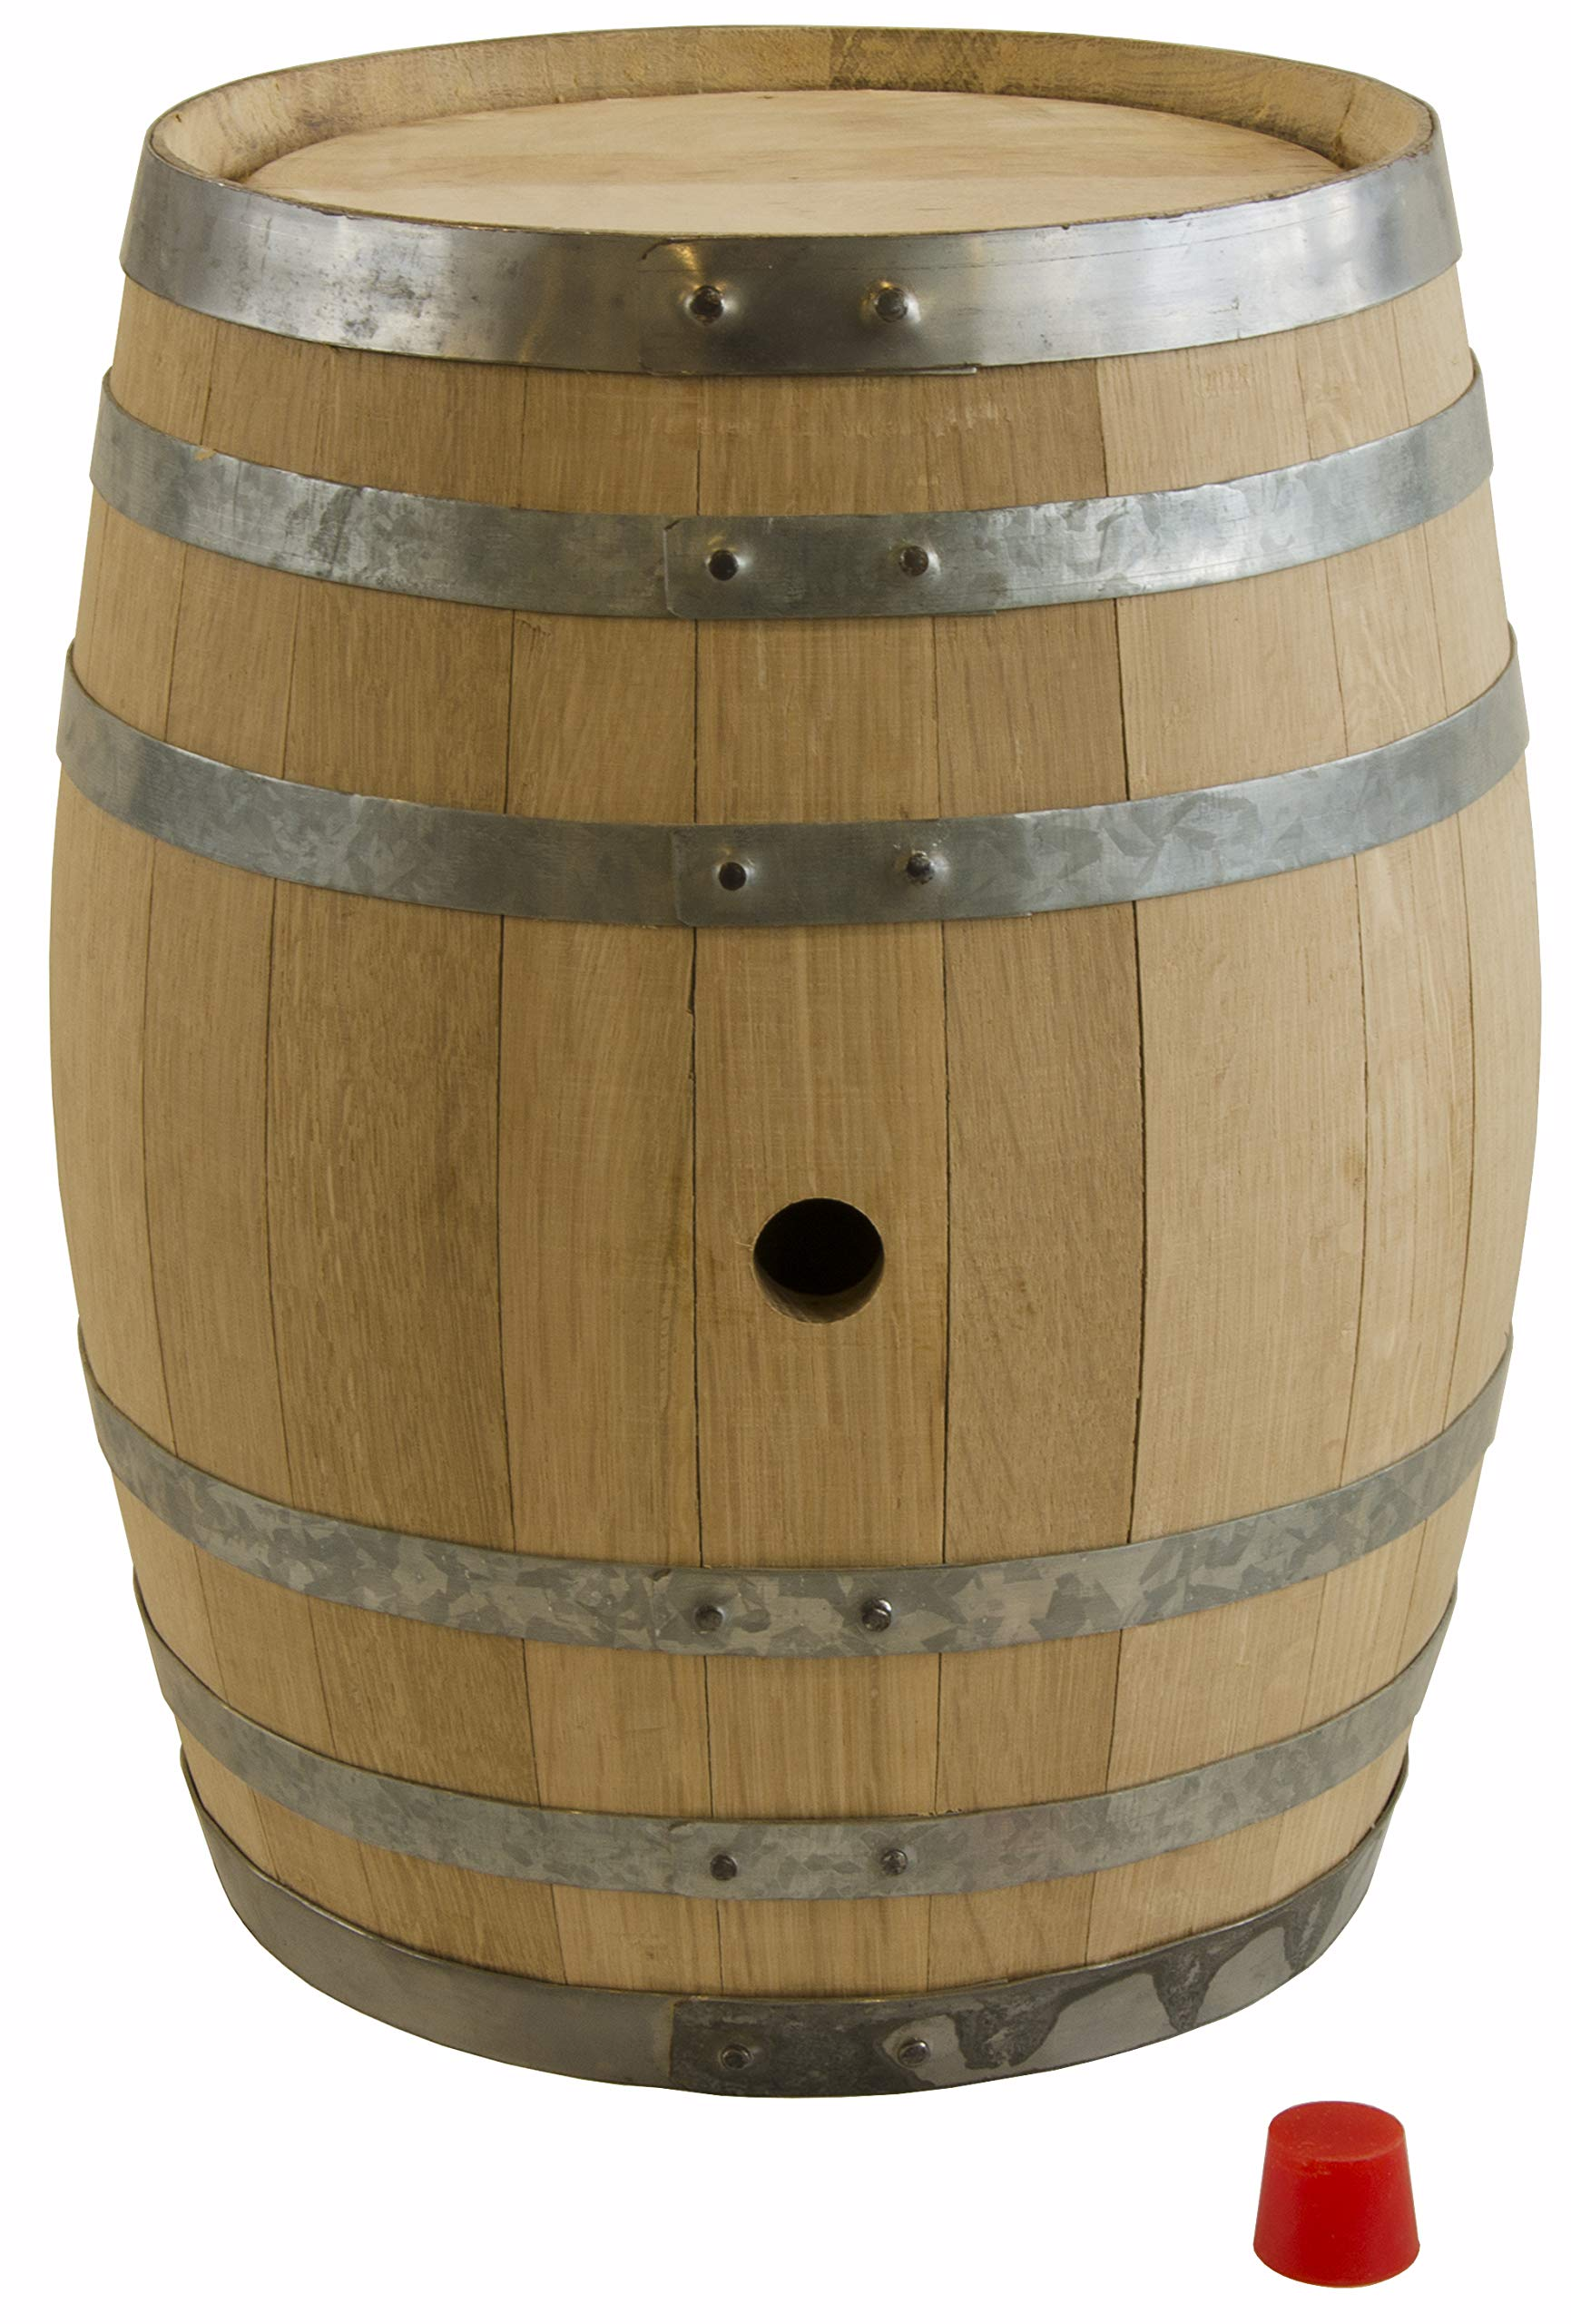 North Mountain Supply Unused American Oak Barrel 5 Gallon Medium Char - with Silicone Bung by North Mountain Supply